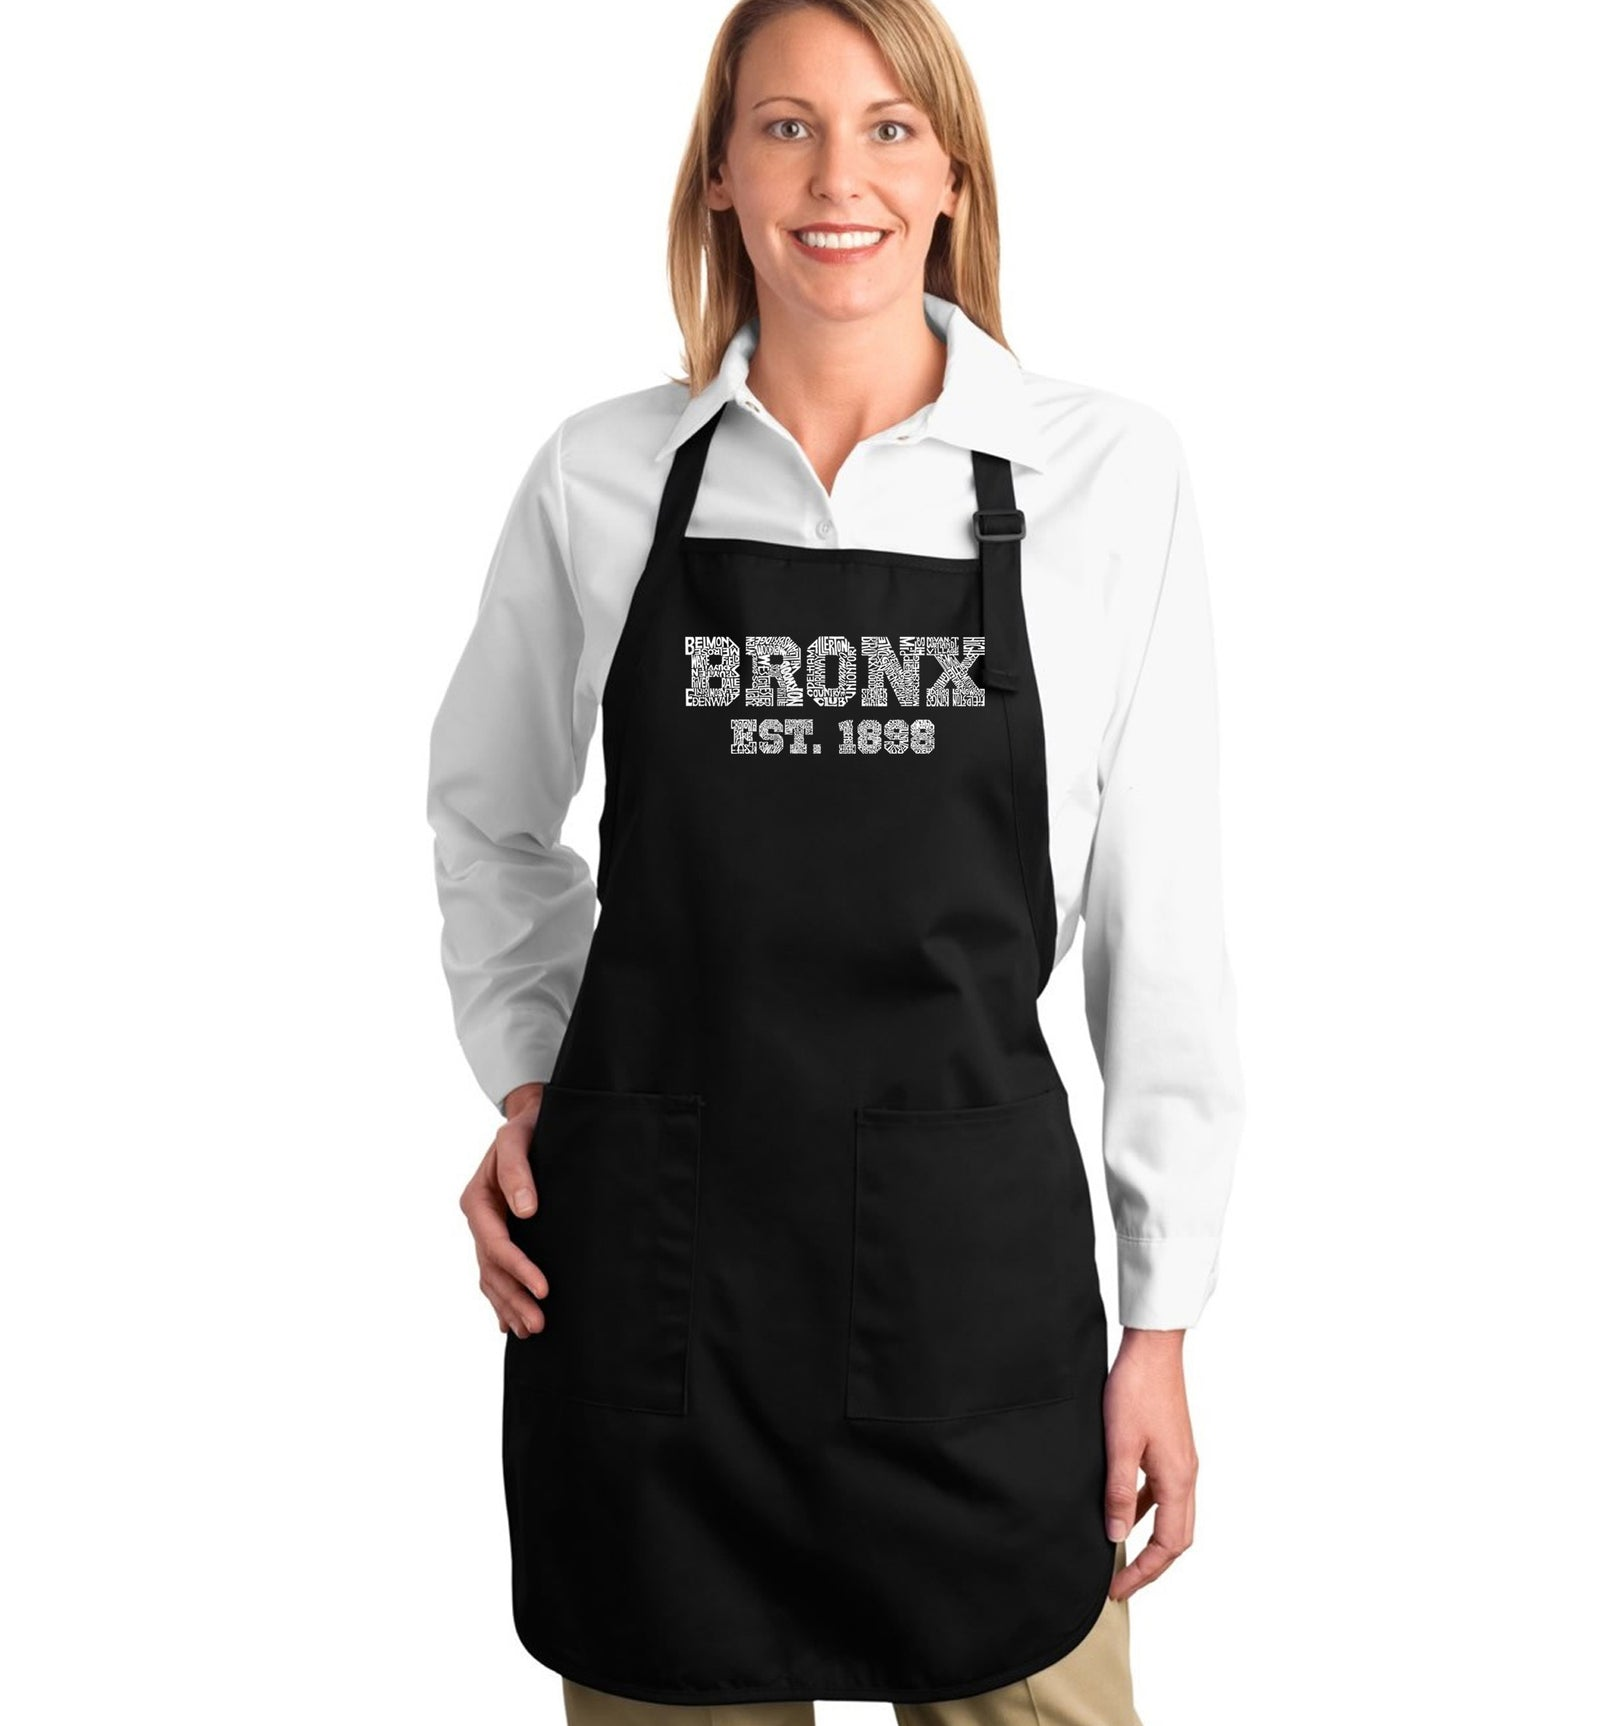 Full Length Apron - POPULAR NEIGHBORHOODS IN BRONX, NY